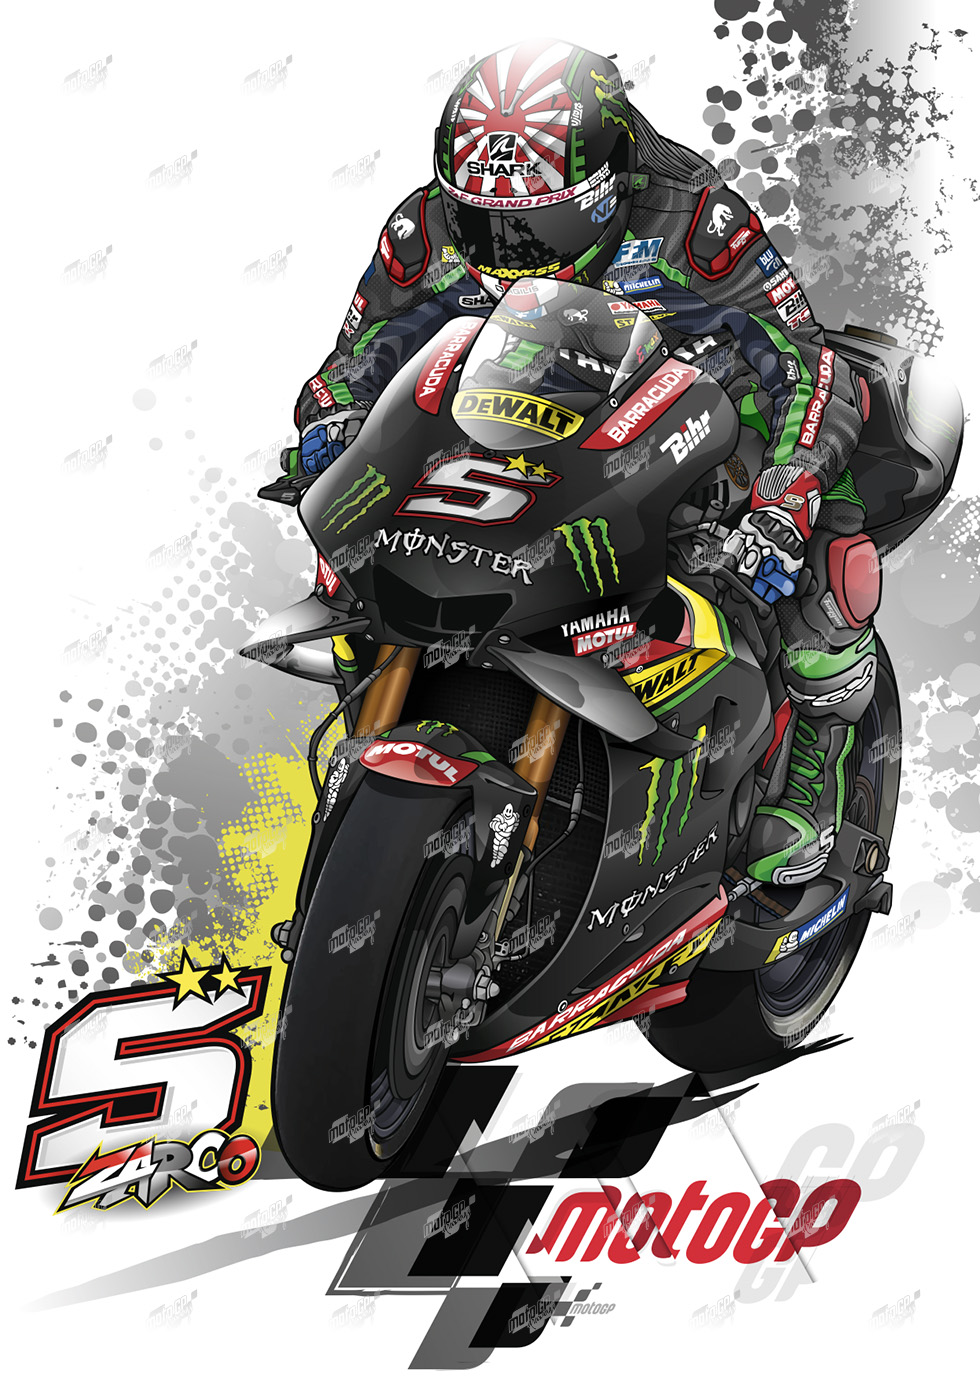 Tech3 Yamaha Full Colors 05 Johann Zarco Prints On Canvas In 2020 Yamaha Motogp Bike